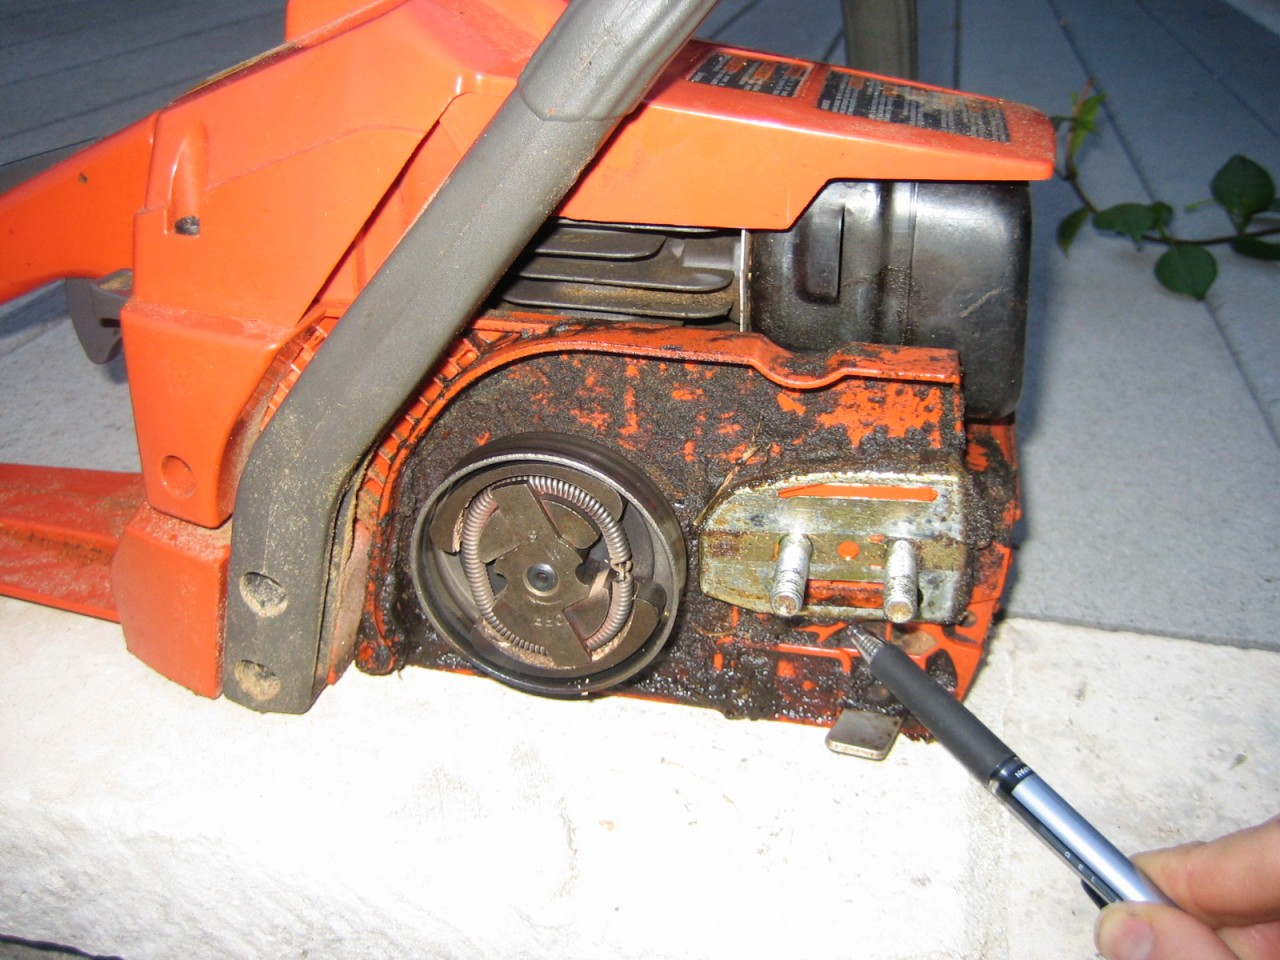 Husqvarna 141 chainsaw no oil on barchain chainsaws forum service maintenance question john husqvarna 141 chainsaw greentooth Choice Image